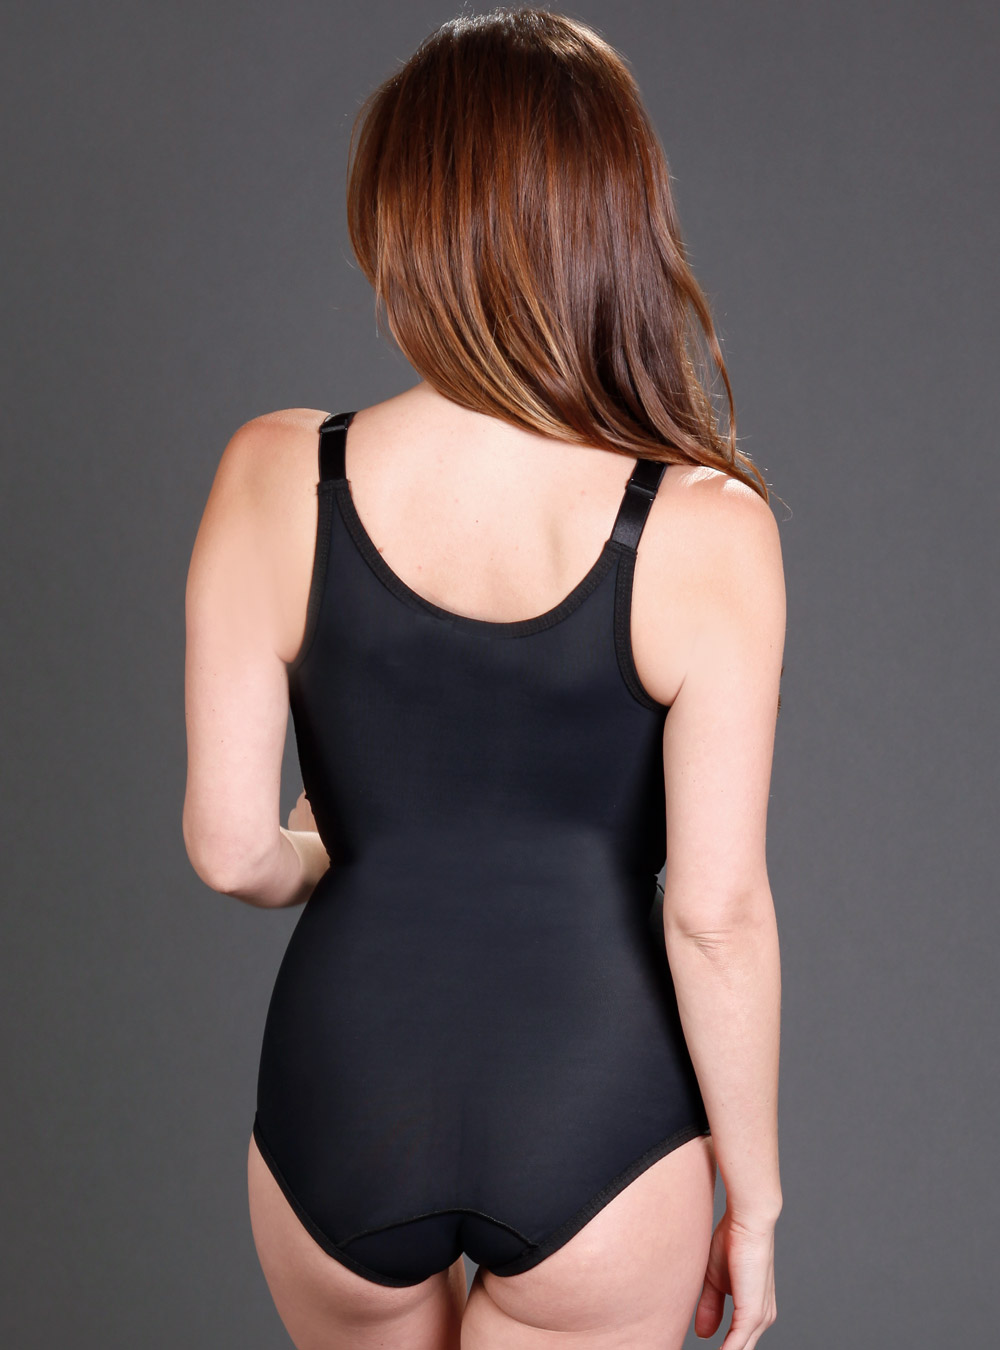 9647f7a3f1bee SC-27 Sculptures Stage 2 Abdominoplasty Body Shaper